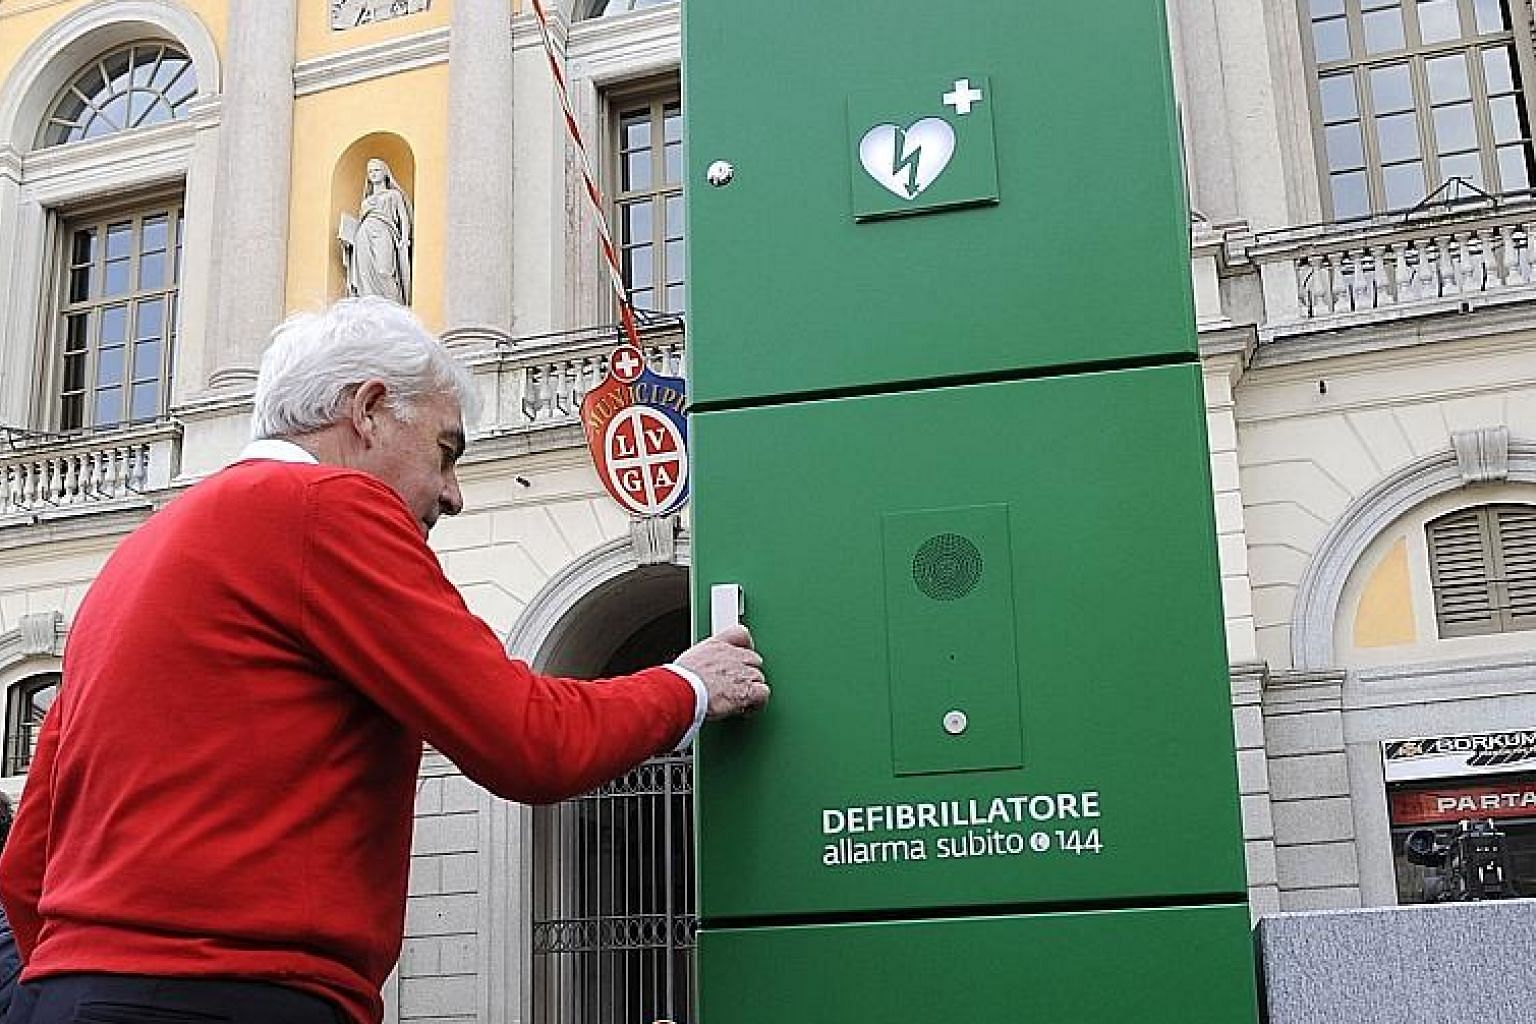 A defibrillator in Lugano, the Italian-speaking canton of Ticino in Switzerland. More than 1,000 defibrillators are available to the public as part of a scheme aimed at helping people who have heart attacks.